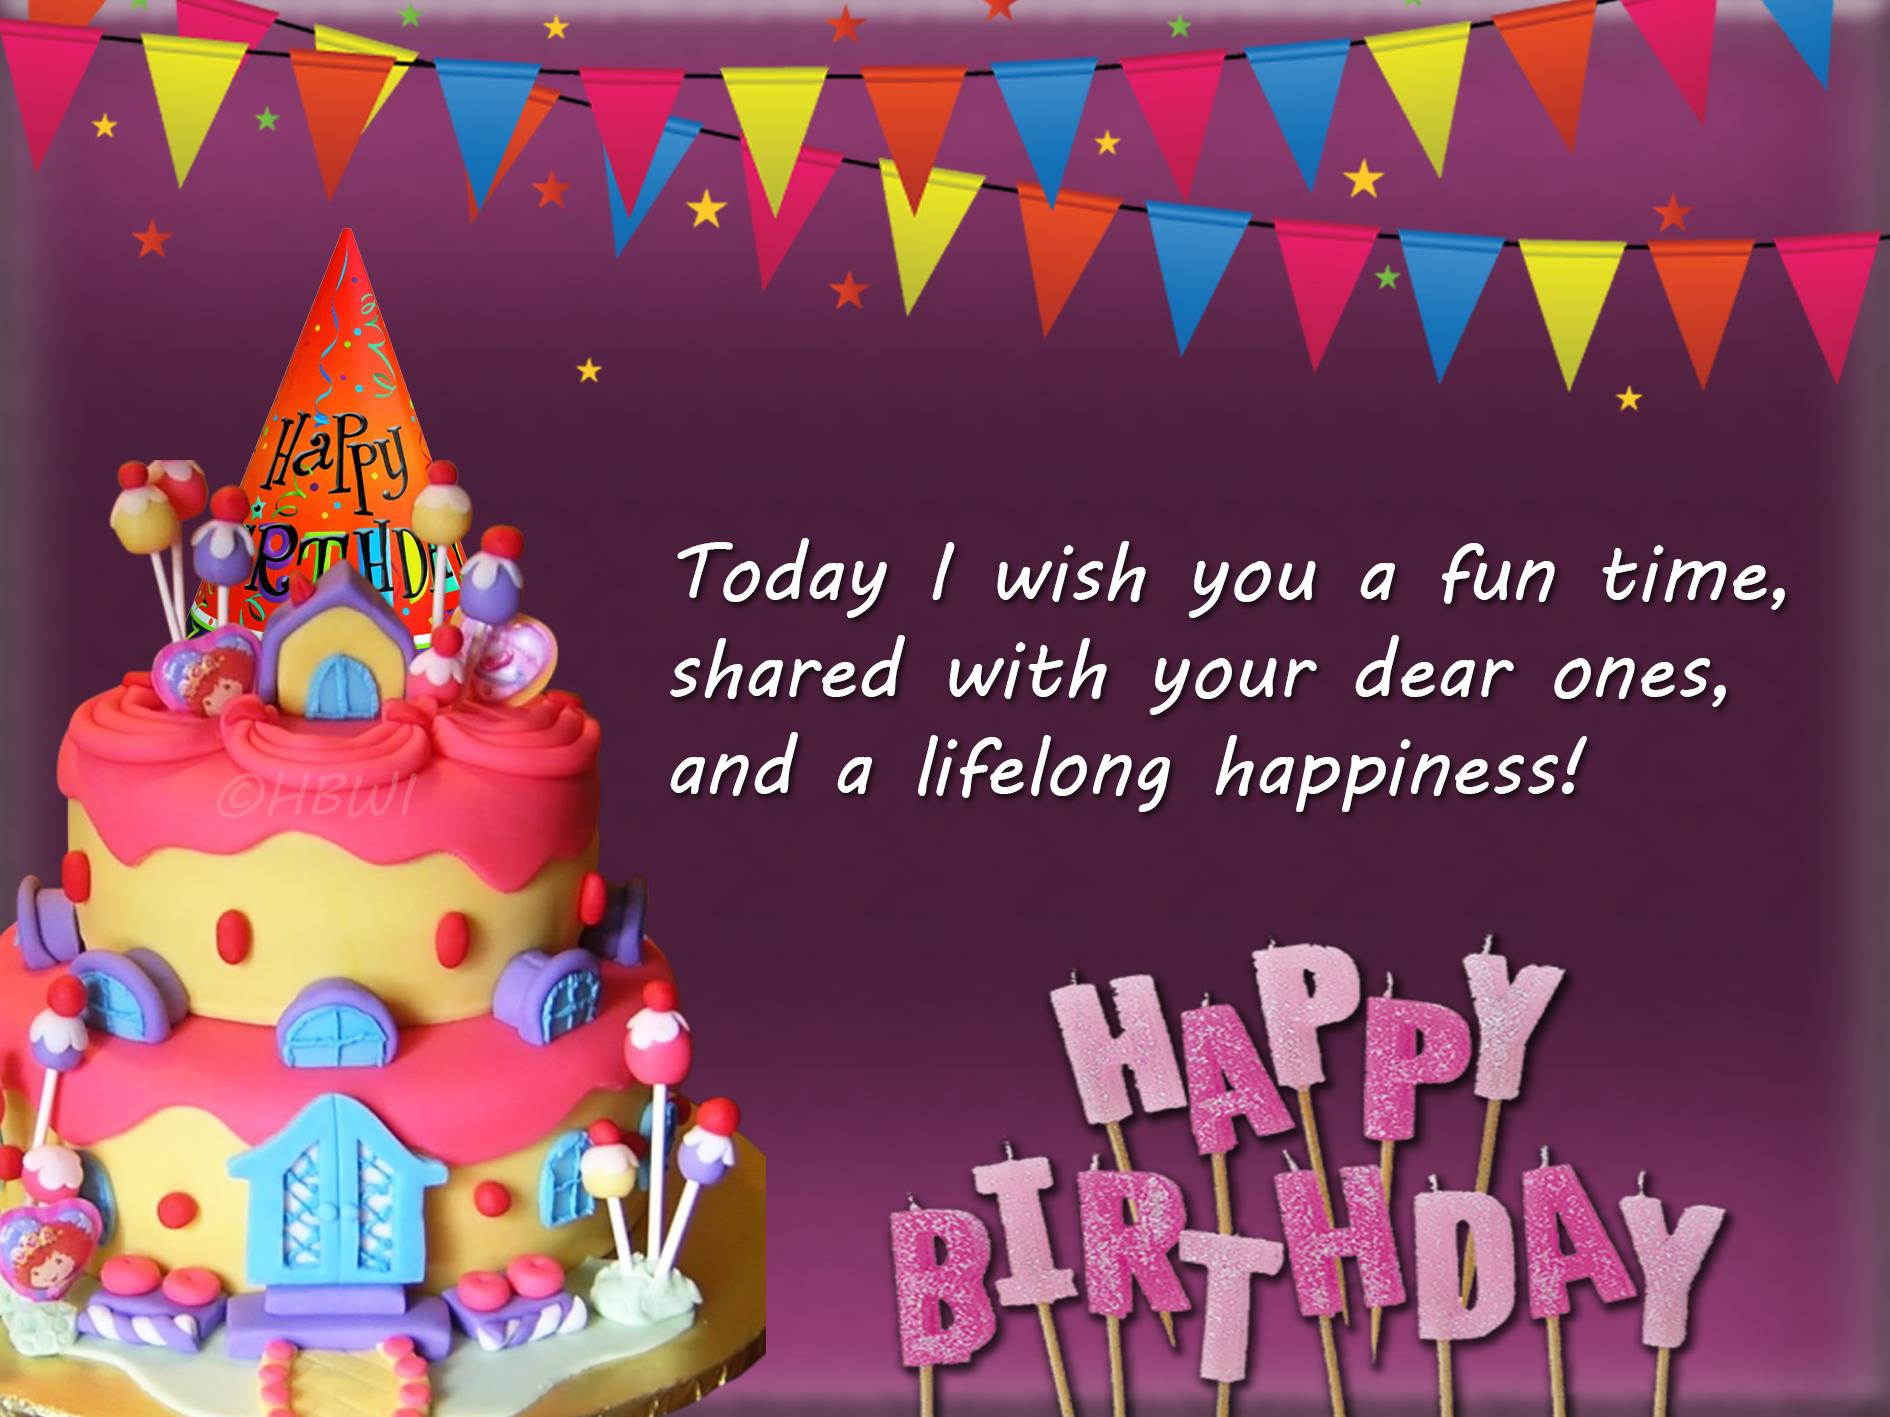 happy birthday wishes hd images ; Funny-Happy-Birthday-Card